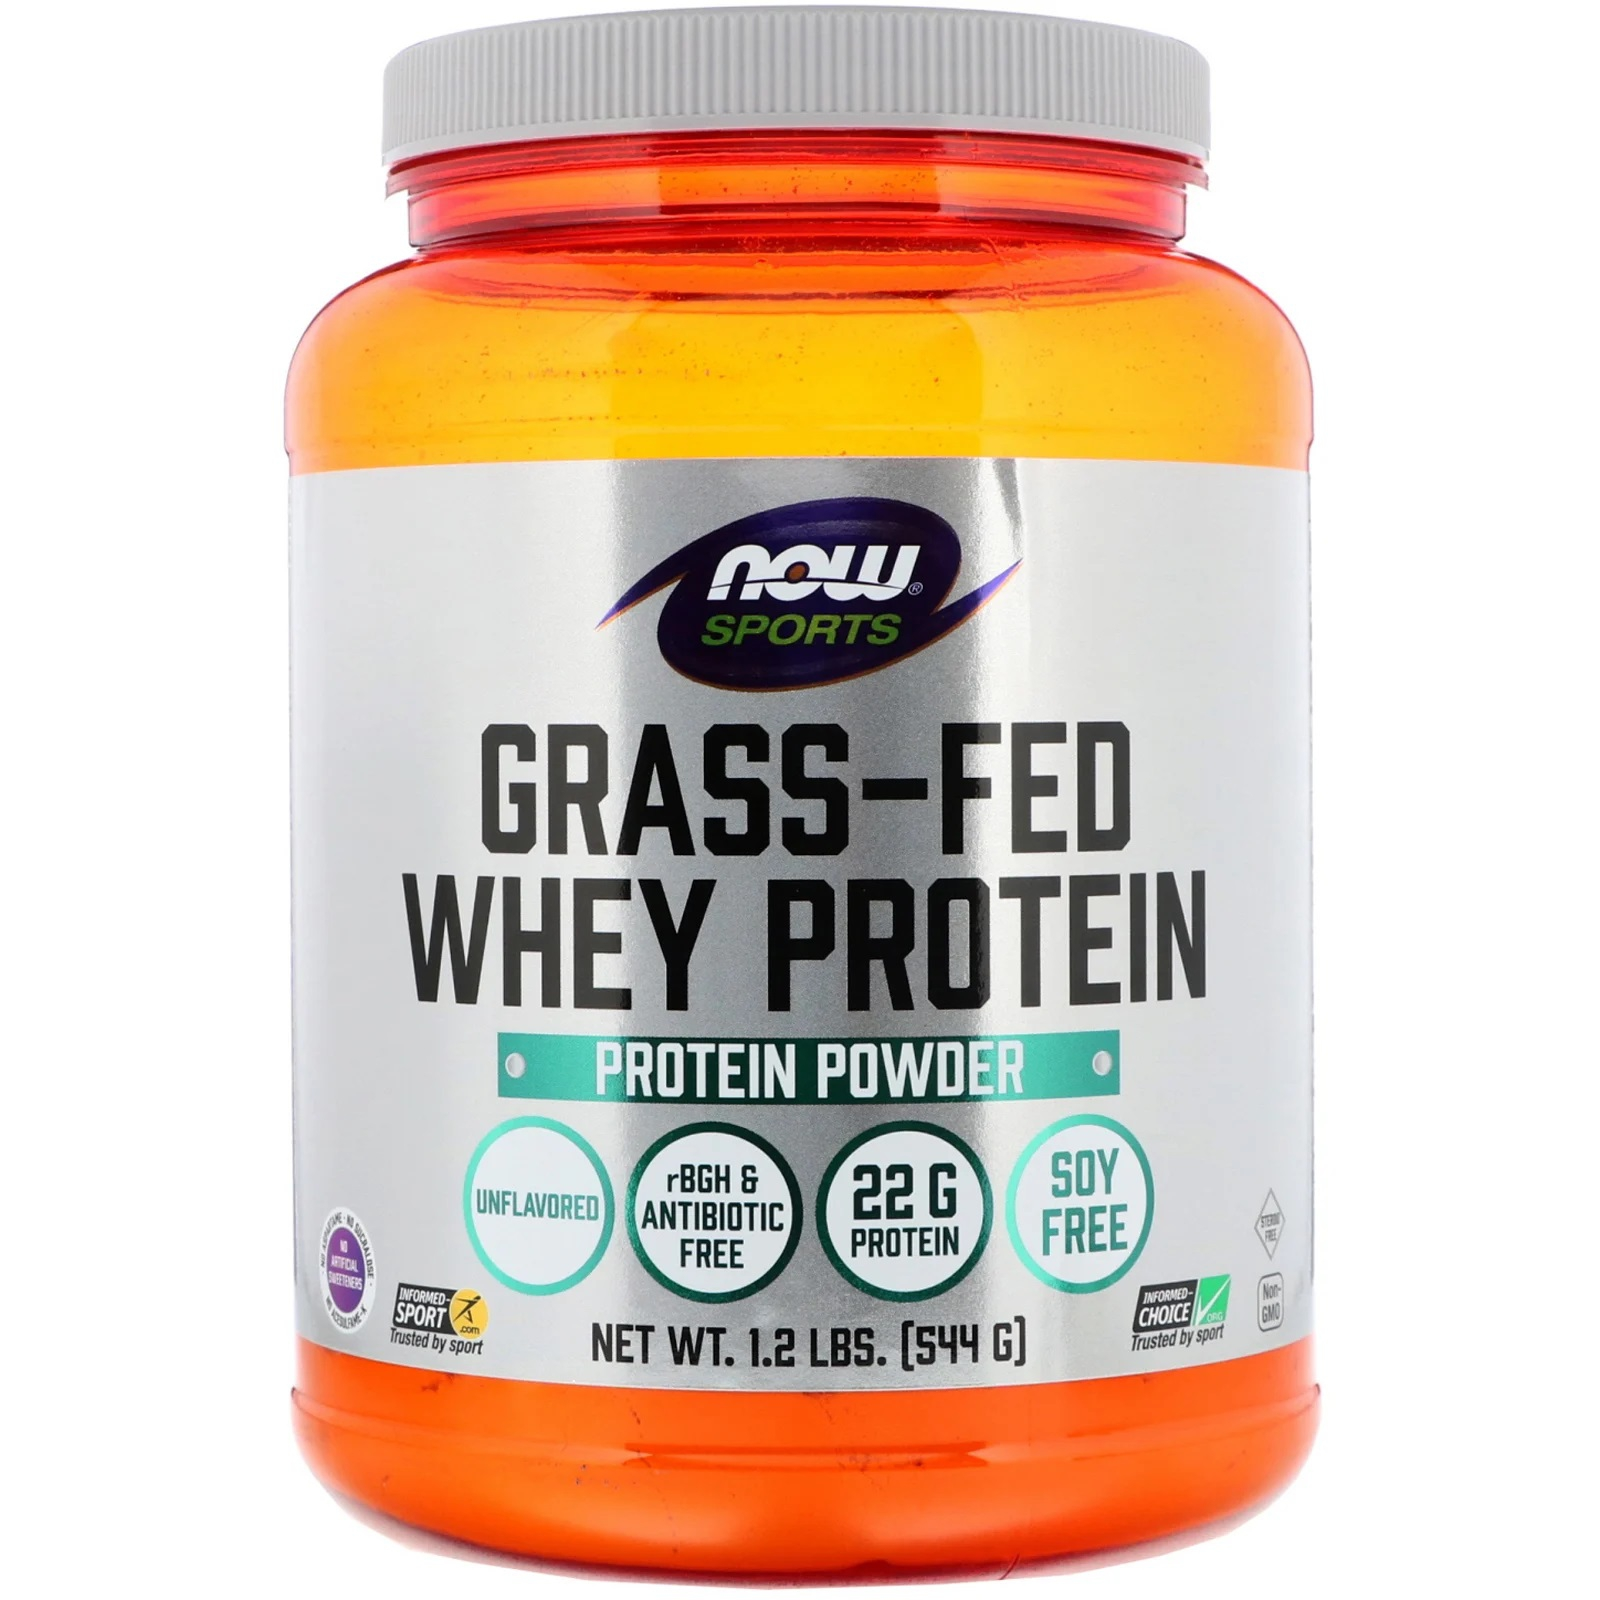 Image of Grass-Fed Whey Protein Concentrate- Natural Unflavored (544 gram) - Now Foods 0733739021014